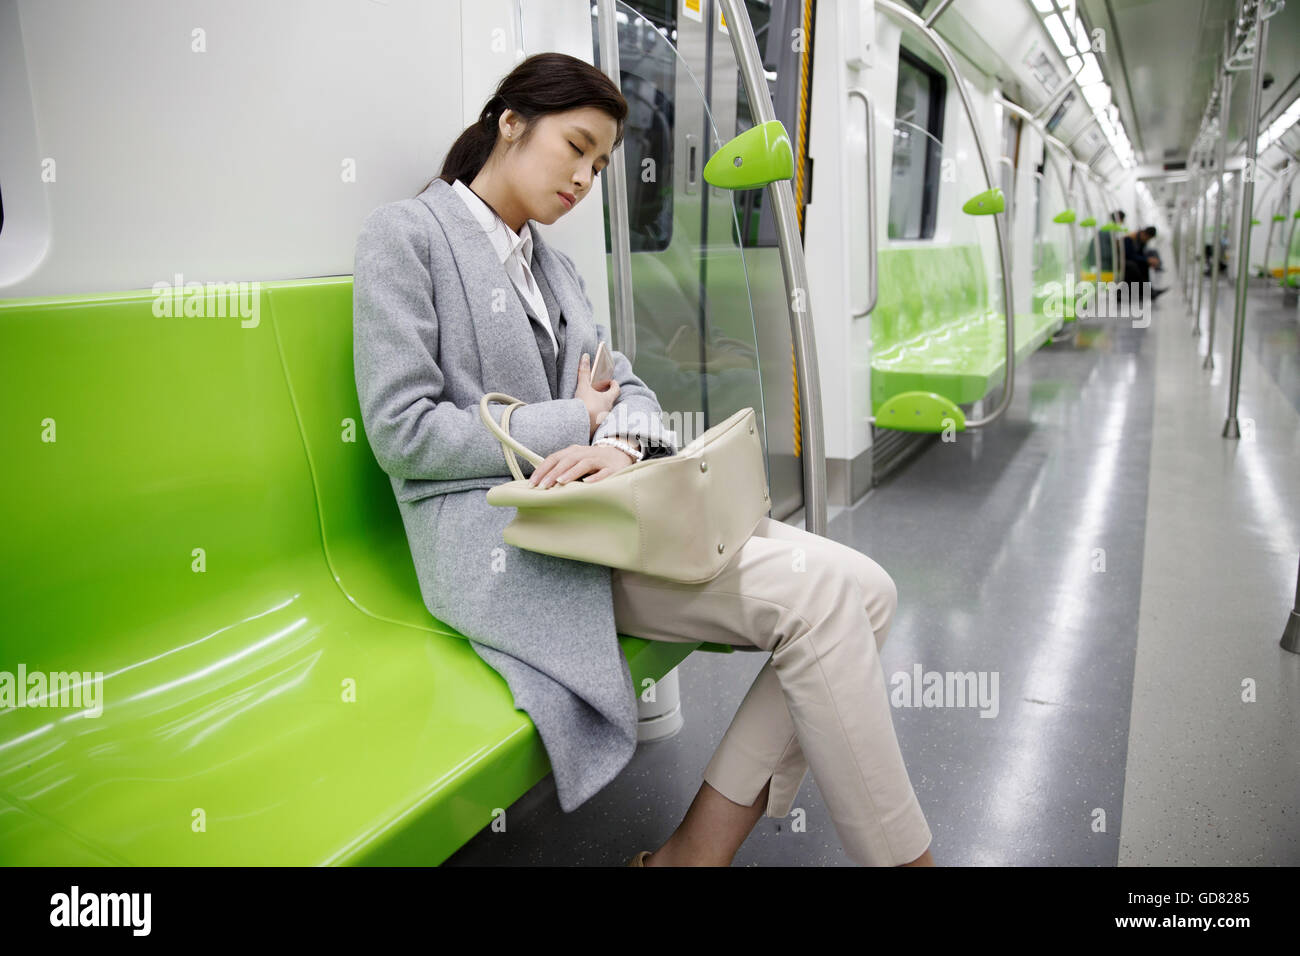 Tired of young women to rest on the subway - Stock Image